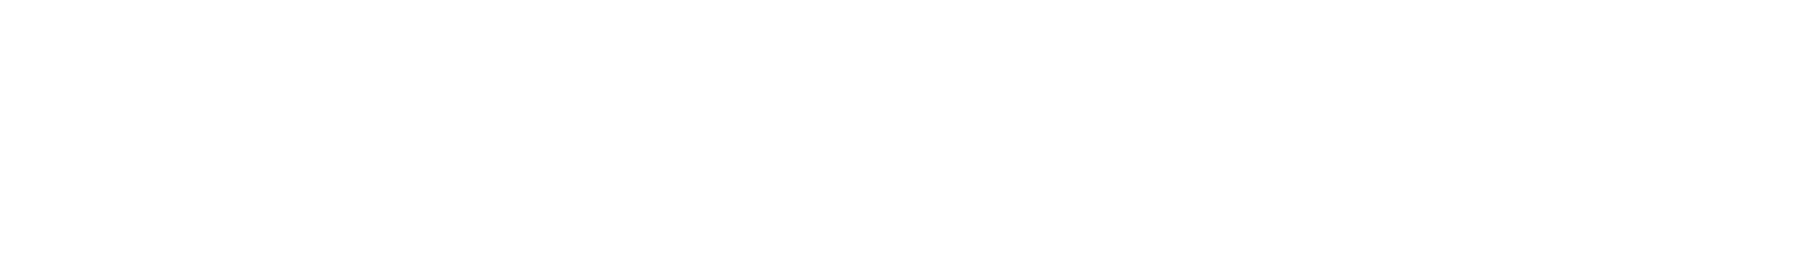 filter synth 1